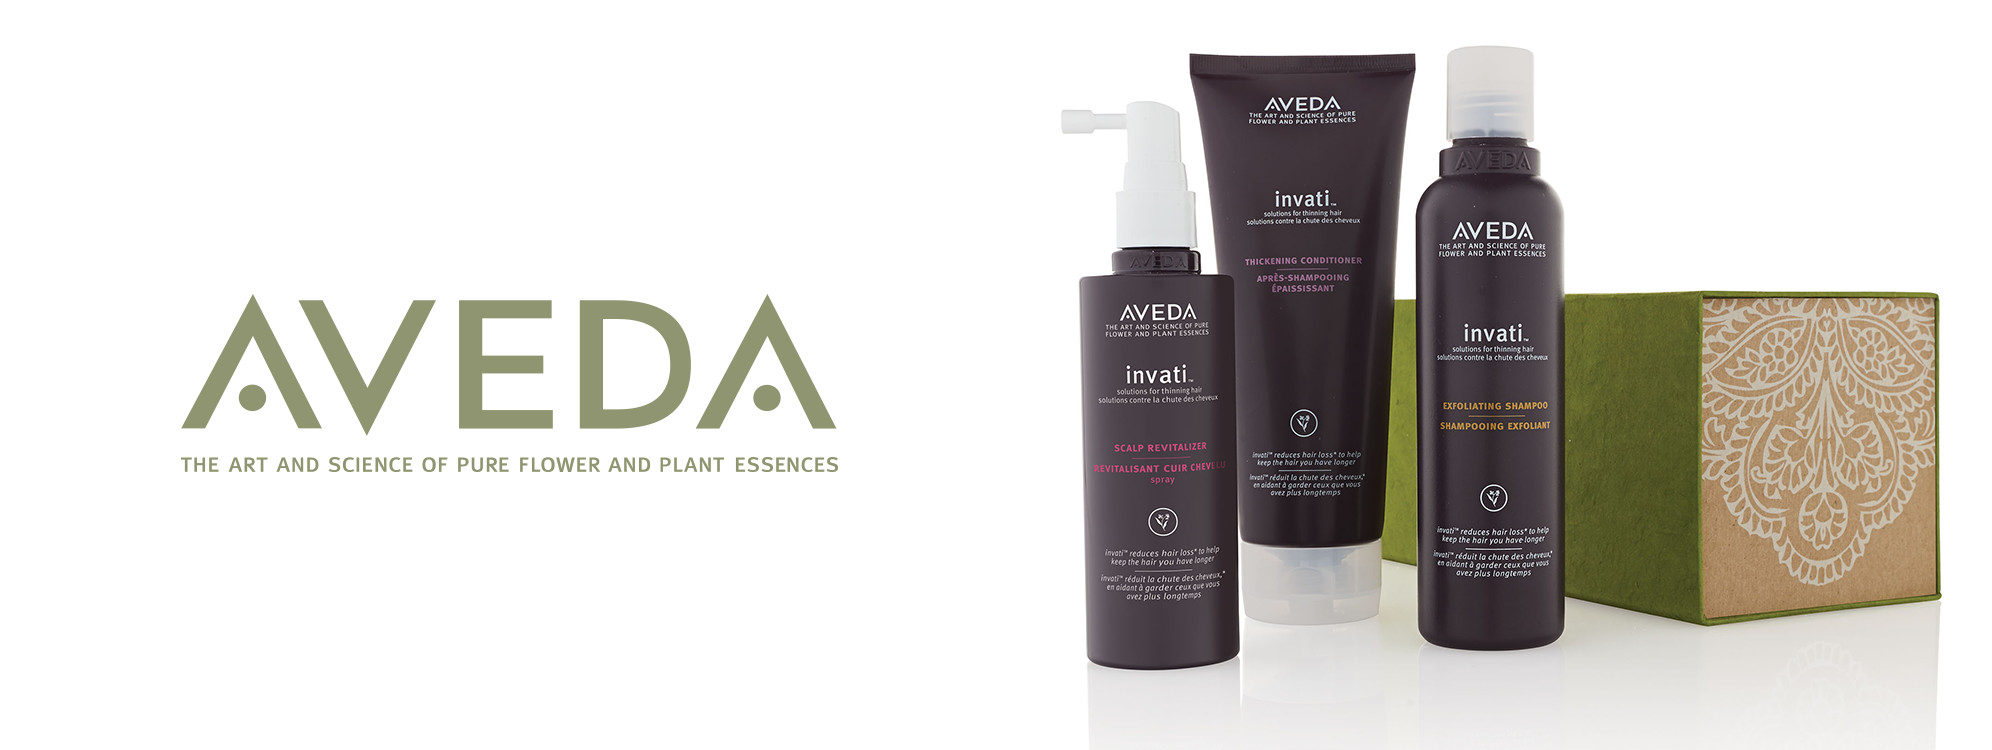 Moda Salon is proud to offer the complete line of AVEDA hair care products. As pioneers in green cosmetics, Aveda seeks to use naturally derived, plant-based ingredients. In addition, they are activists in fair and responsible business practices. Aveda's ethic ensures that your purchase and use of their products will have very little impact on the physical environment and will help indigenous people and communities through fair trade and philanthropy. Enjoy natural beauty with our line of Aveda.